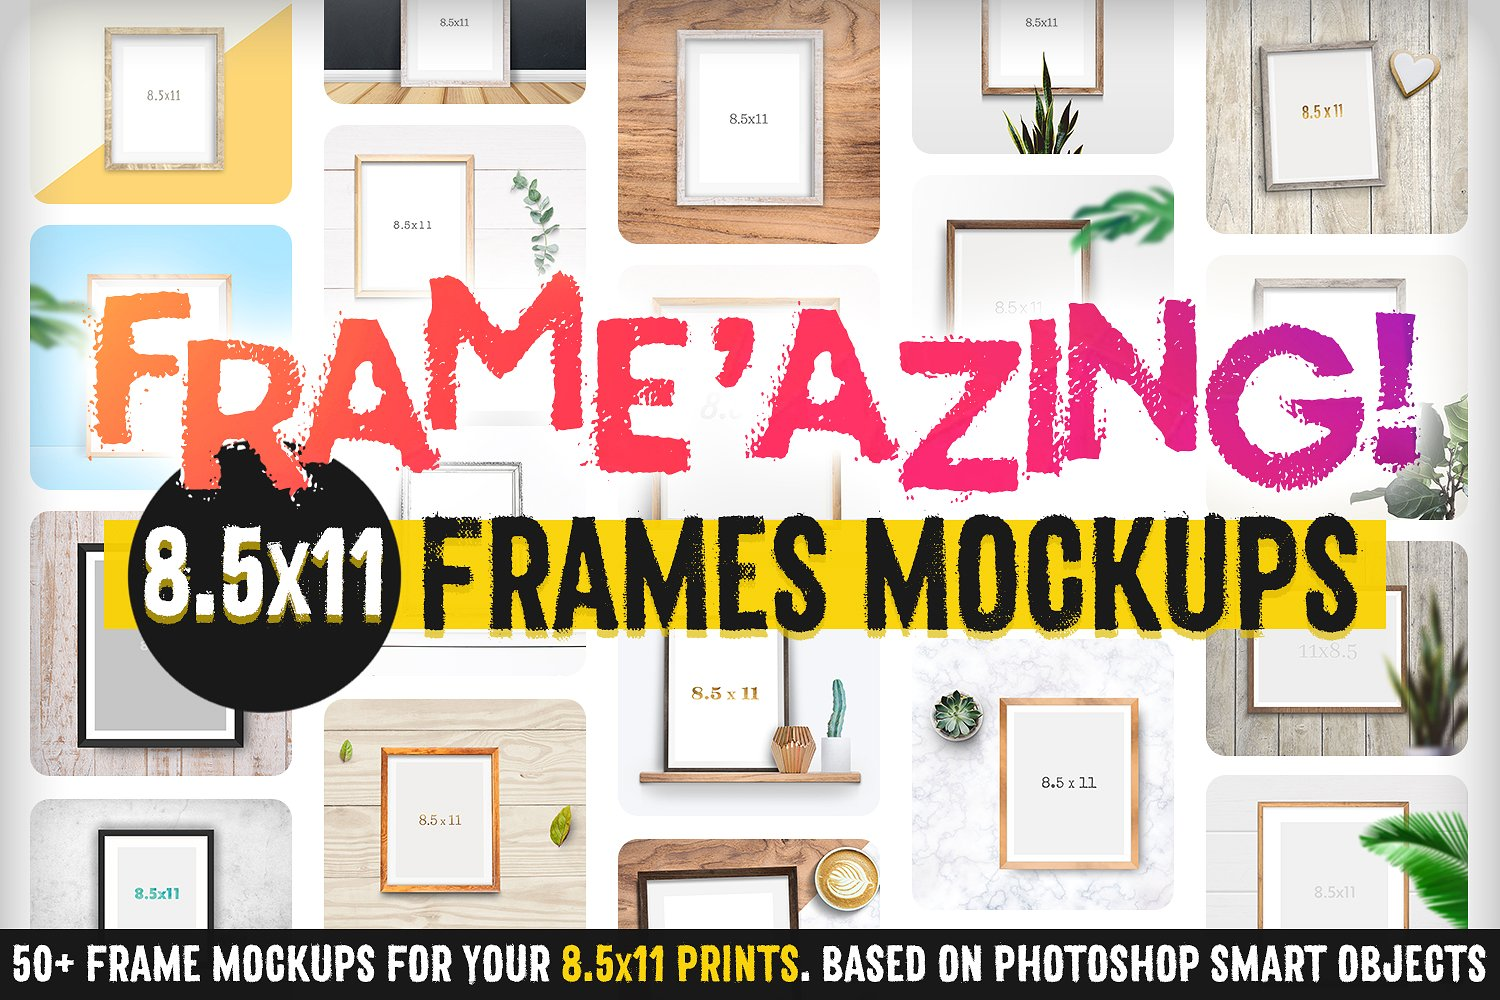 framazing-8.5x11-mockups-main-preview-.jpg